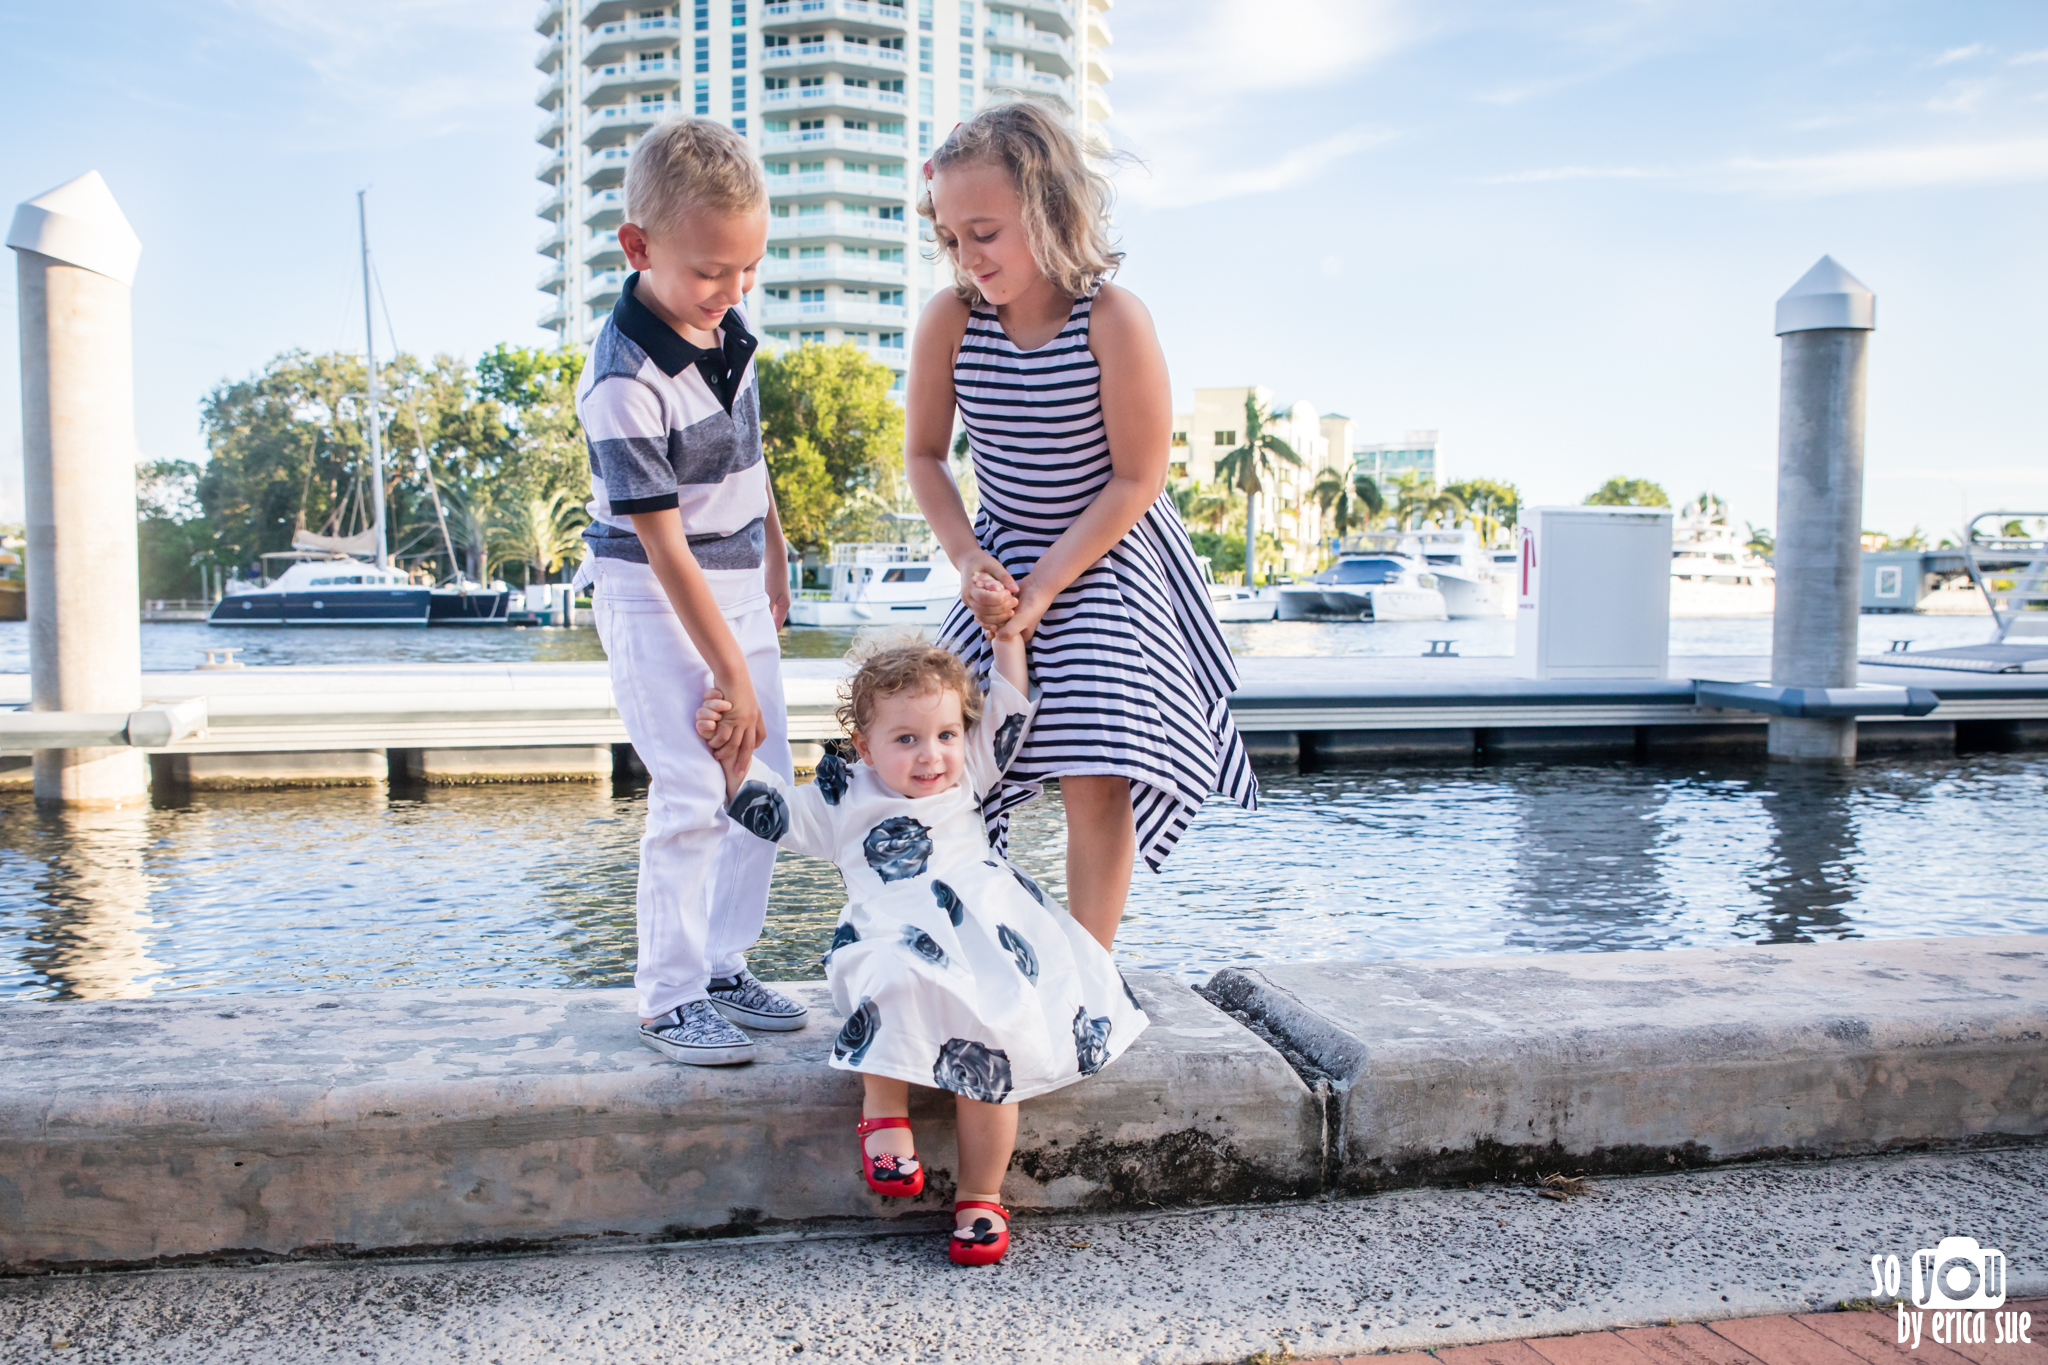 ft-lauderdale-lifestyle-family-photography-so-you-by-erica-sue--3.jpg